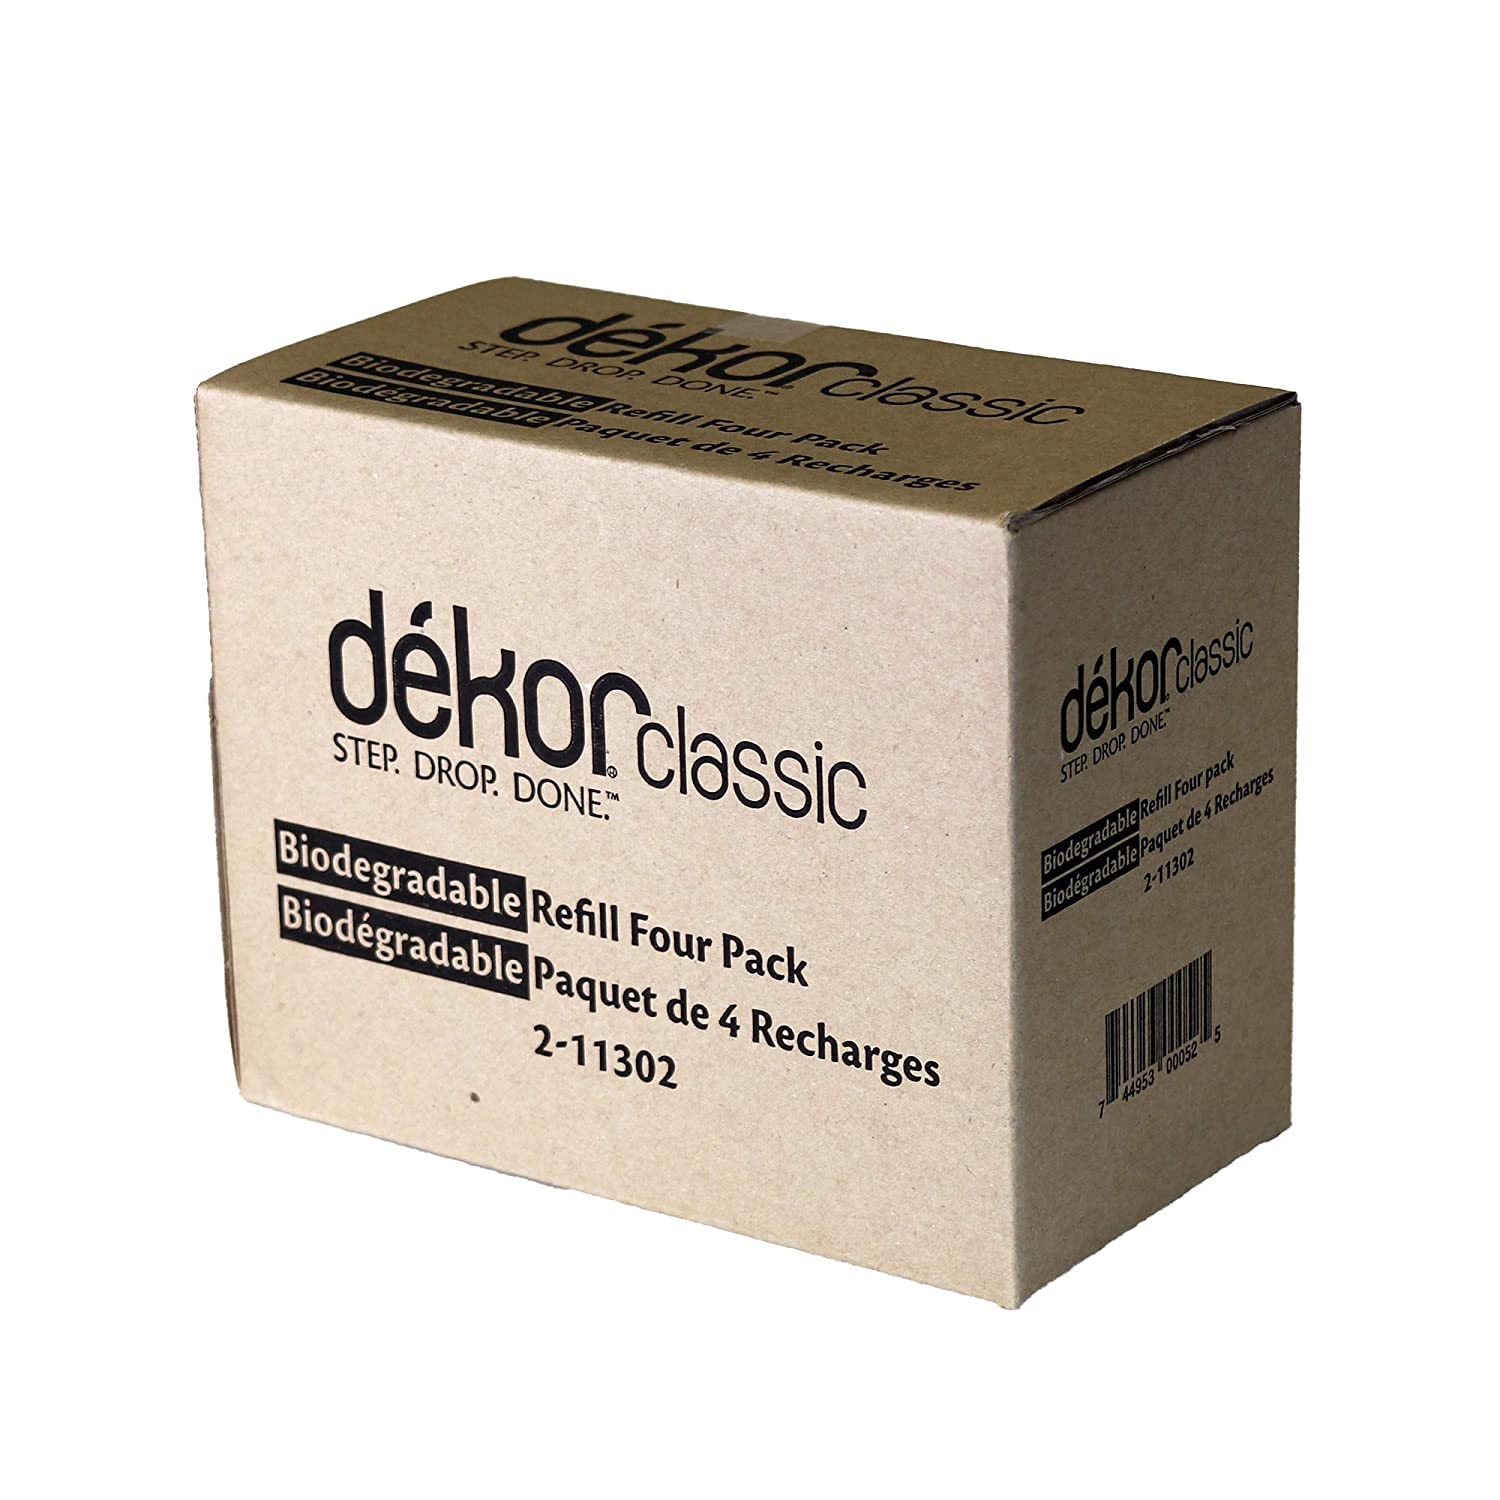 Dekor Classic Diaper Pail Biodegradable Refills | Most Economical Refill System | Quick and Simple to Replace | No Preset Bag Size – Use Only What You Need | Exclusive End-of-Liner Marking | 4 Count 4332391503